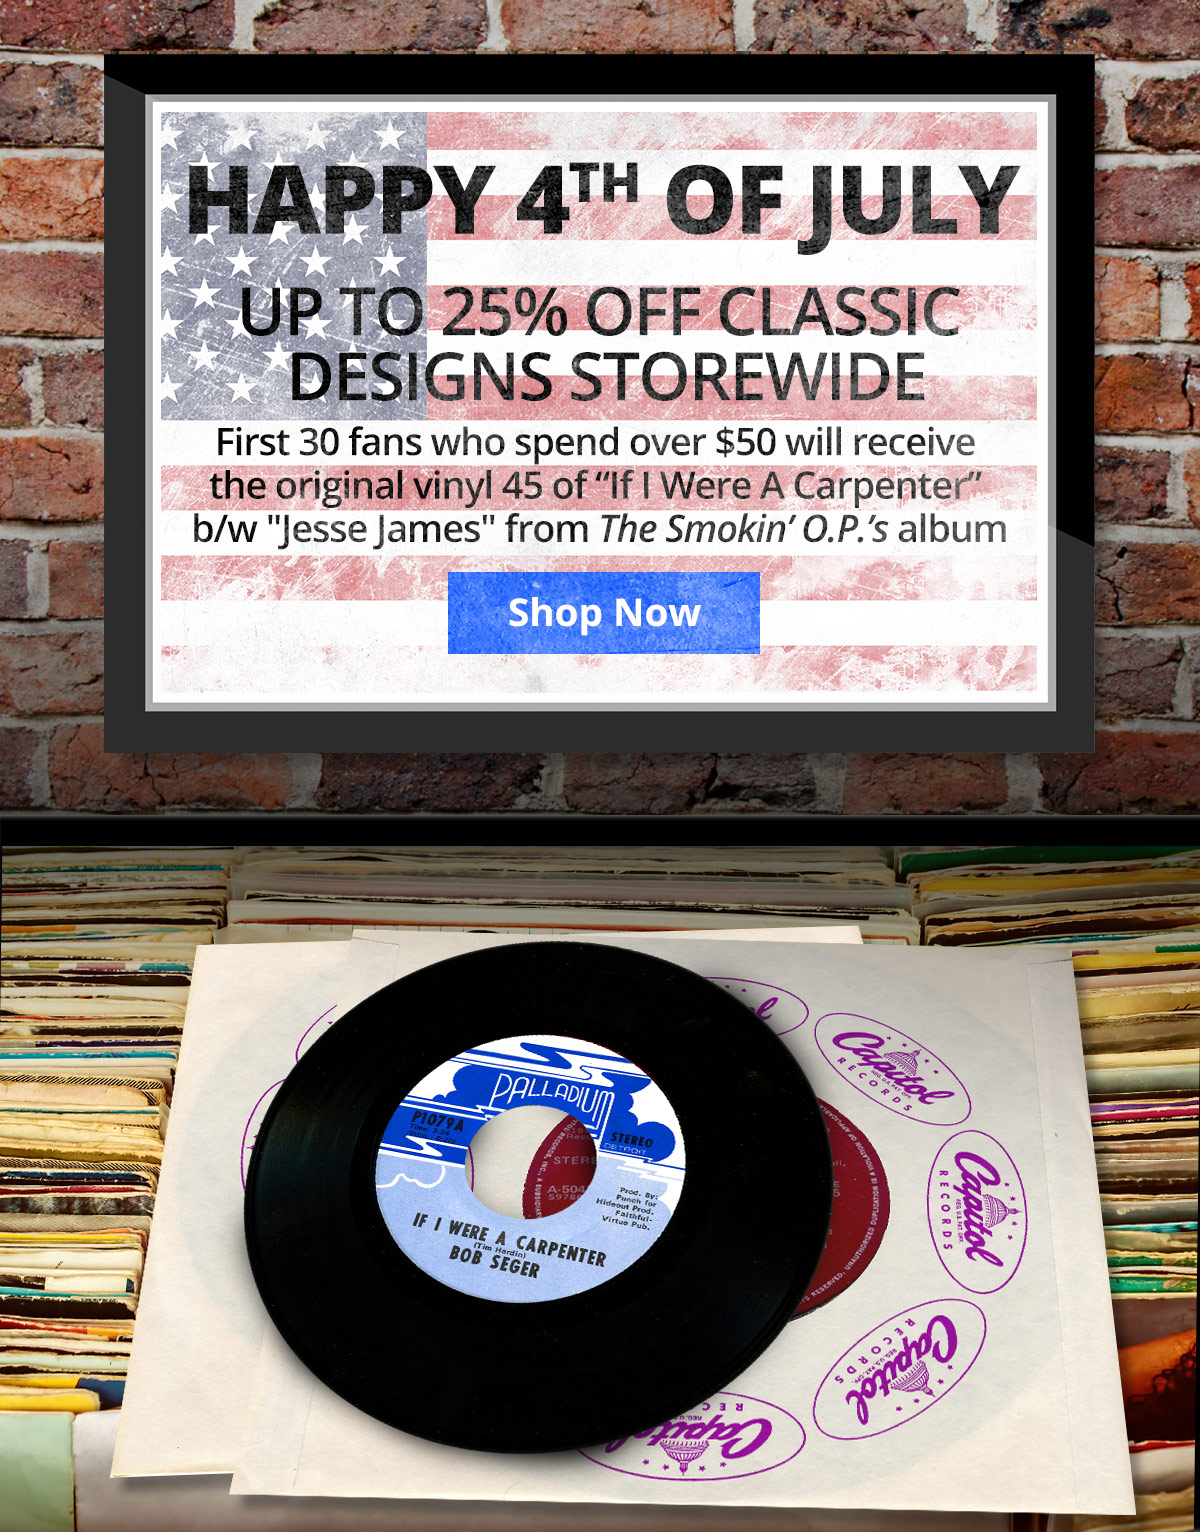 """Happy 4th of July - Up to 25% off classic designs storewide. First 30 fans who spend over $50 will receive a FREE 45 of """"Smokin' O.P.'s"""" Shop Now."""